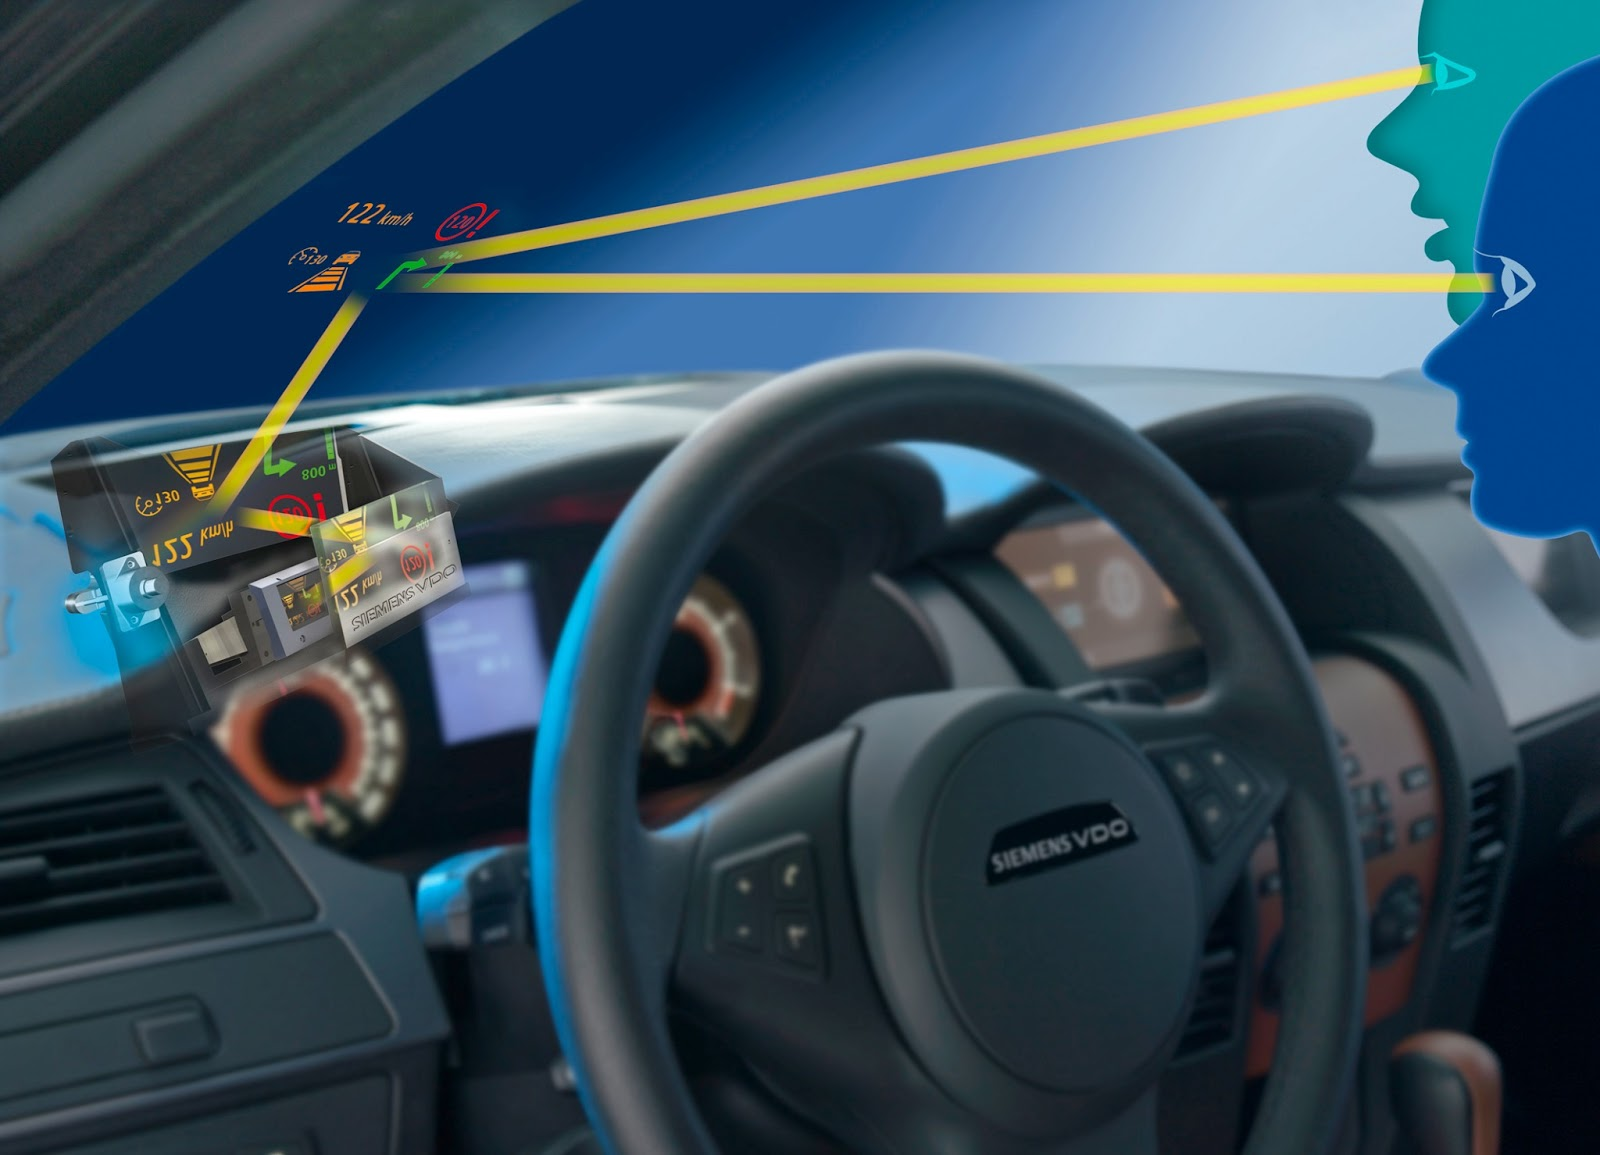 HUD: Head Up Displays - Windshield Projection Technologies ...